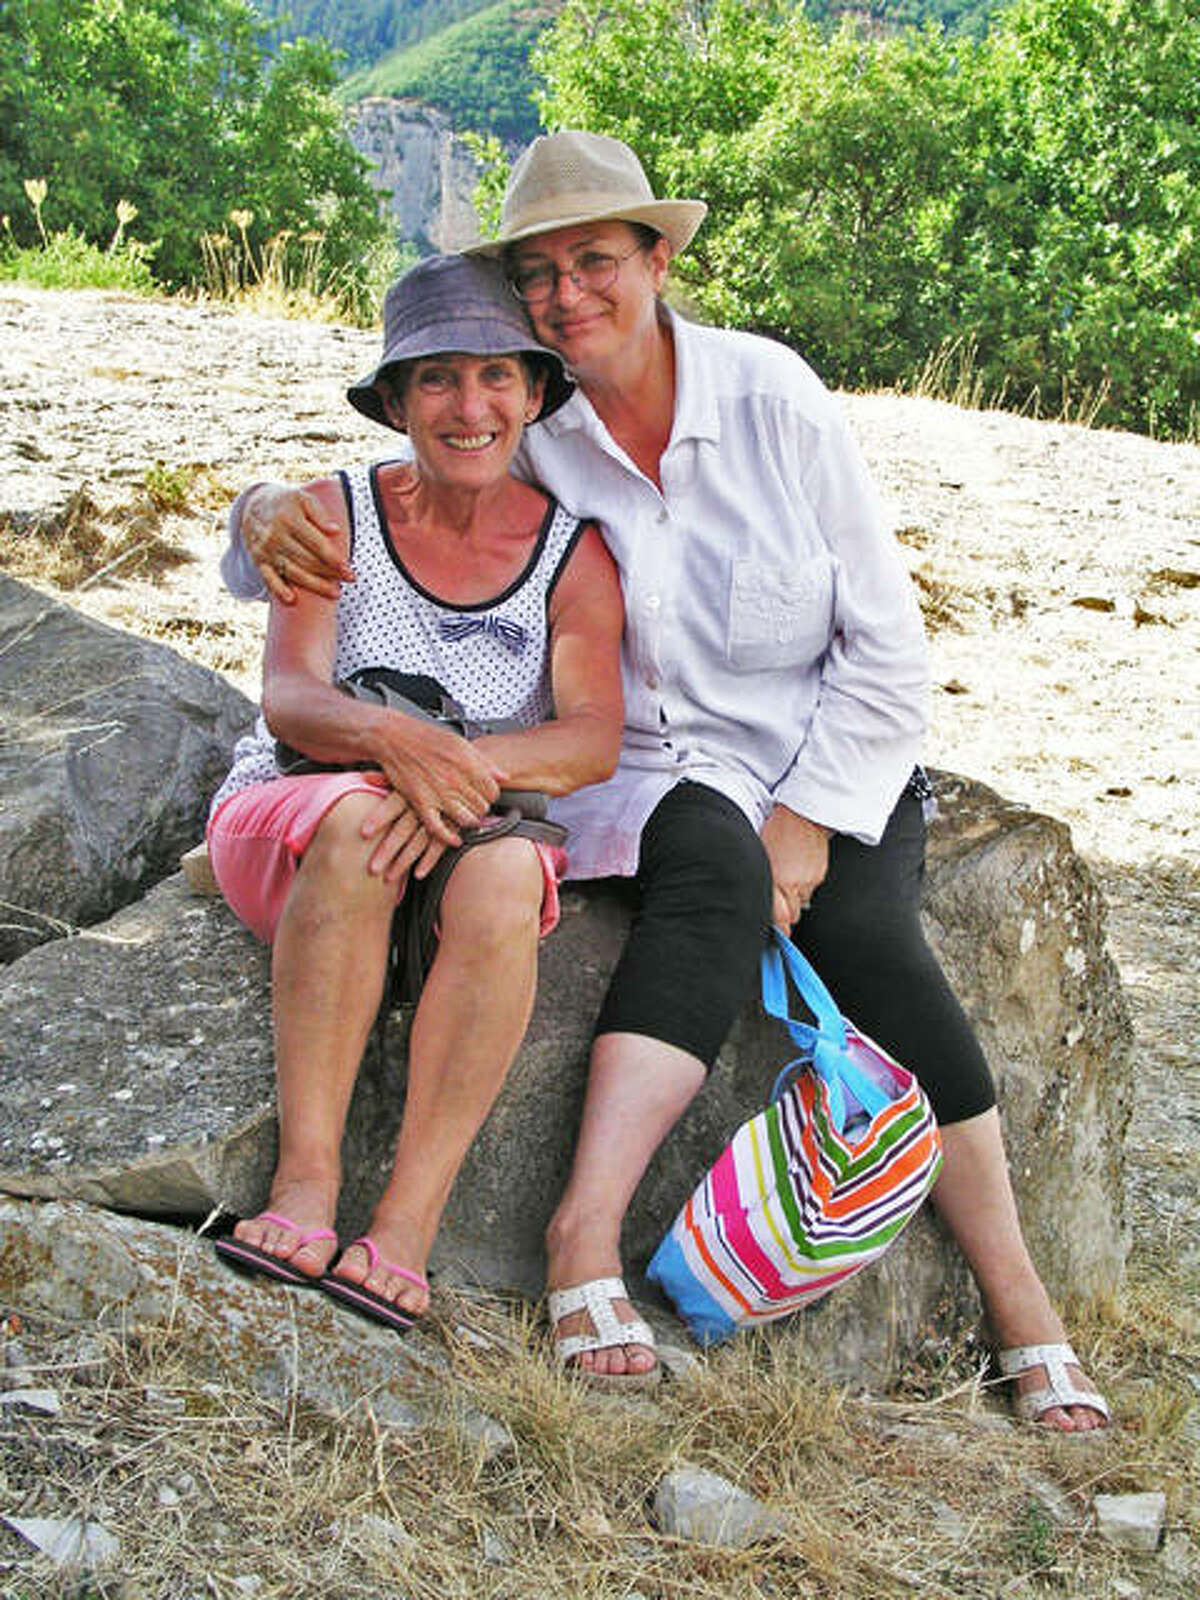 Annie Almoguera (left) and Mary Wilson (right) in France during Wilson's trip to see her lifelong friend in 2015. PenPals for 46 years, Almoguera and Wilson started exchanging letters to each other when they were just 15 years old and never let distance stand in the way of creating a lasting friendship.